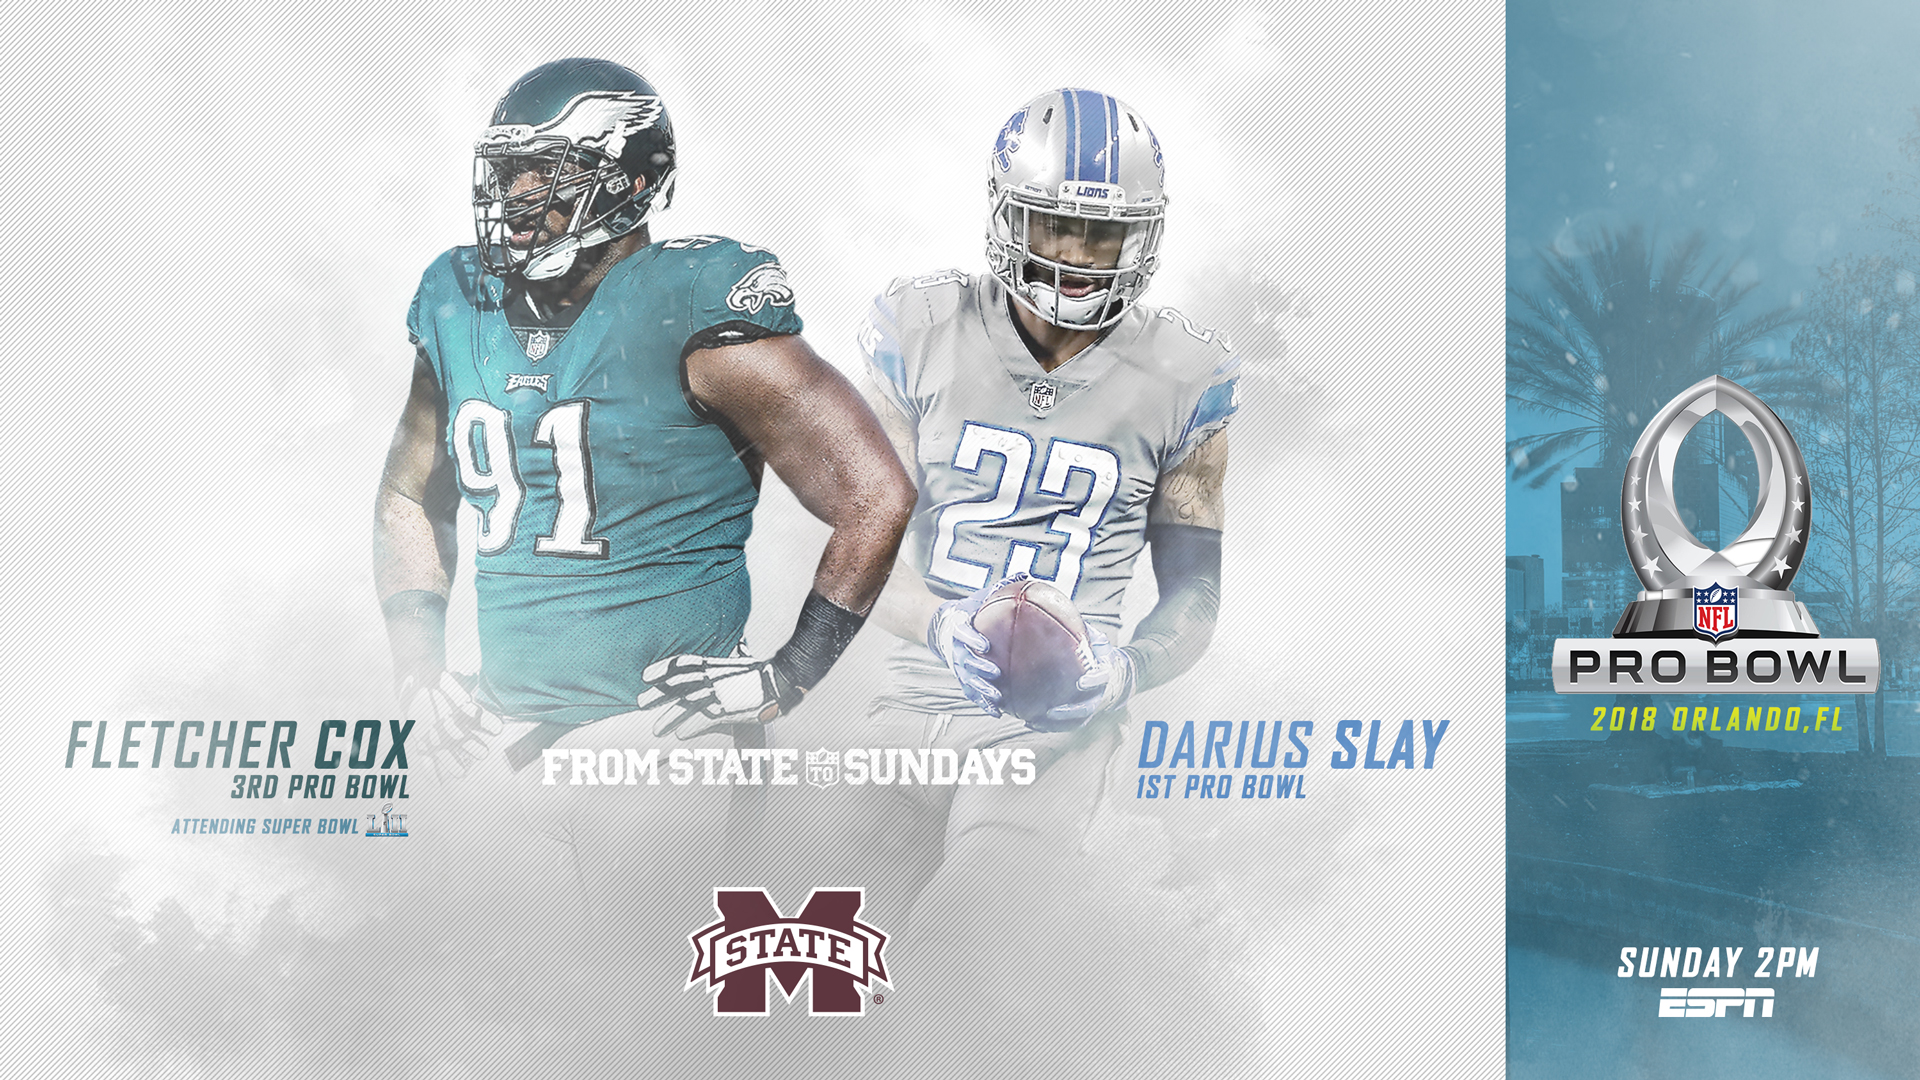 FromStateToSundays Darius Slay Makes First Pro Bowl Appearance 1920x1080